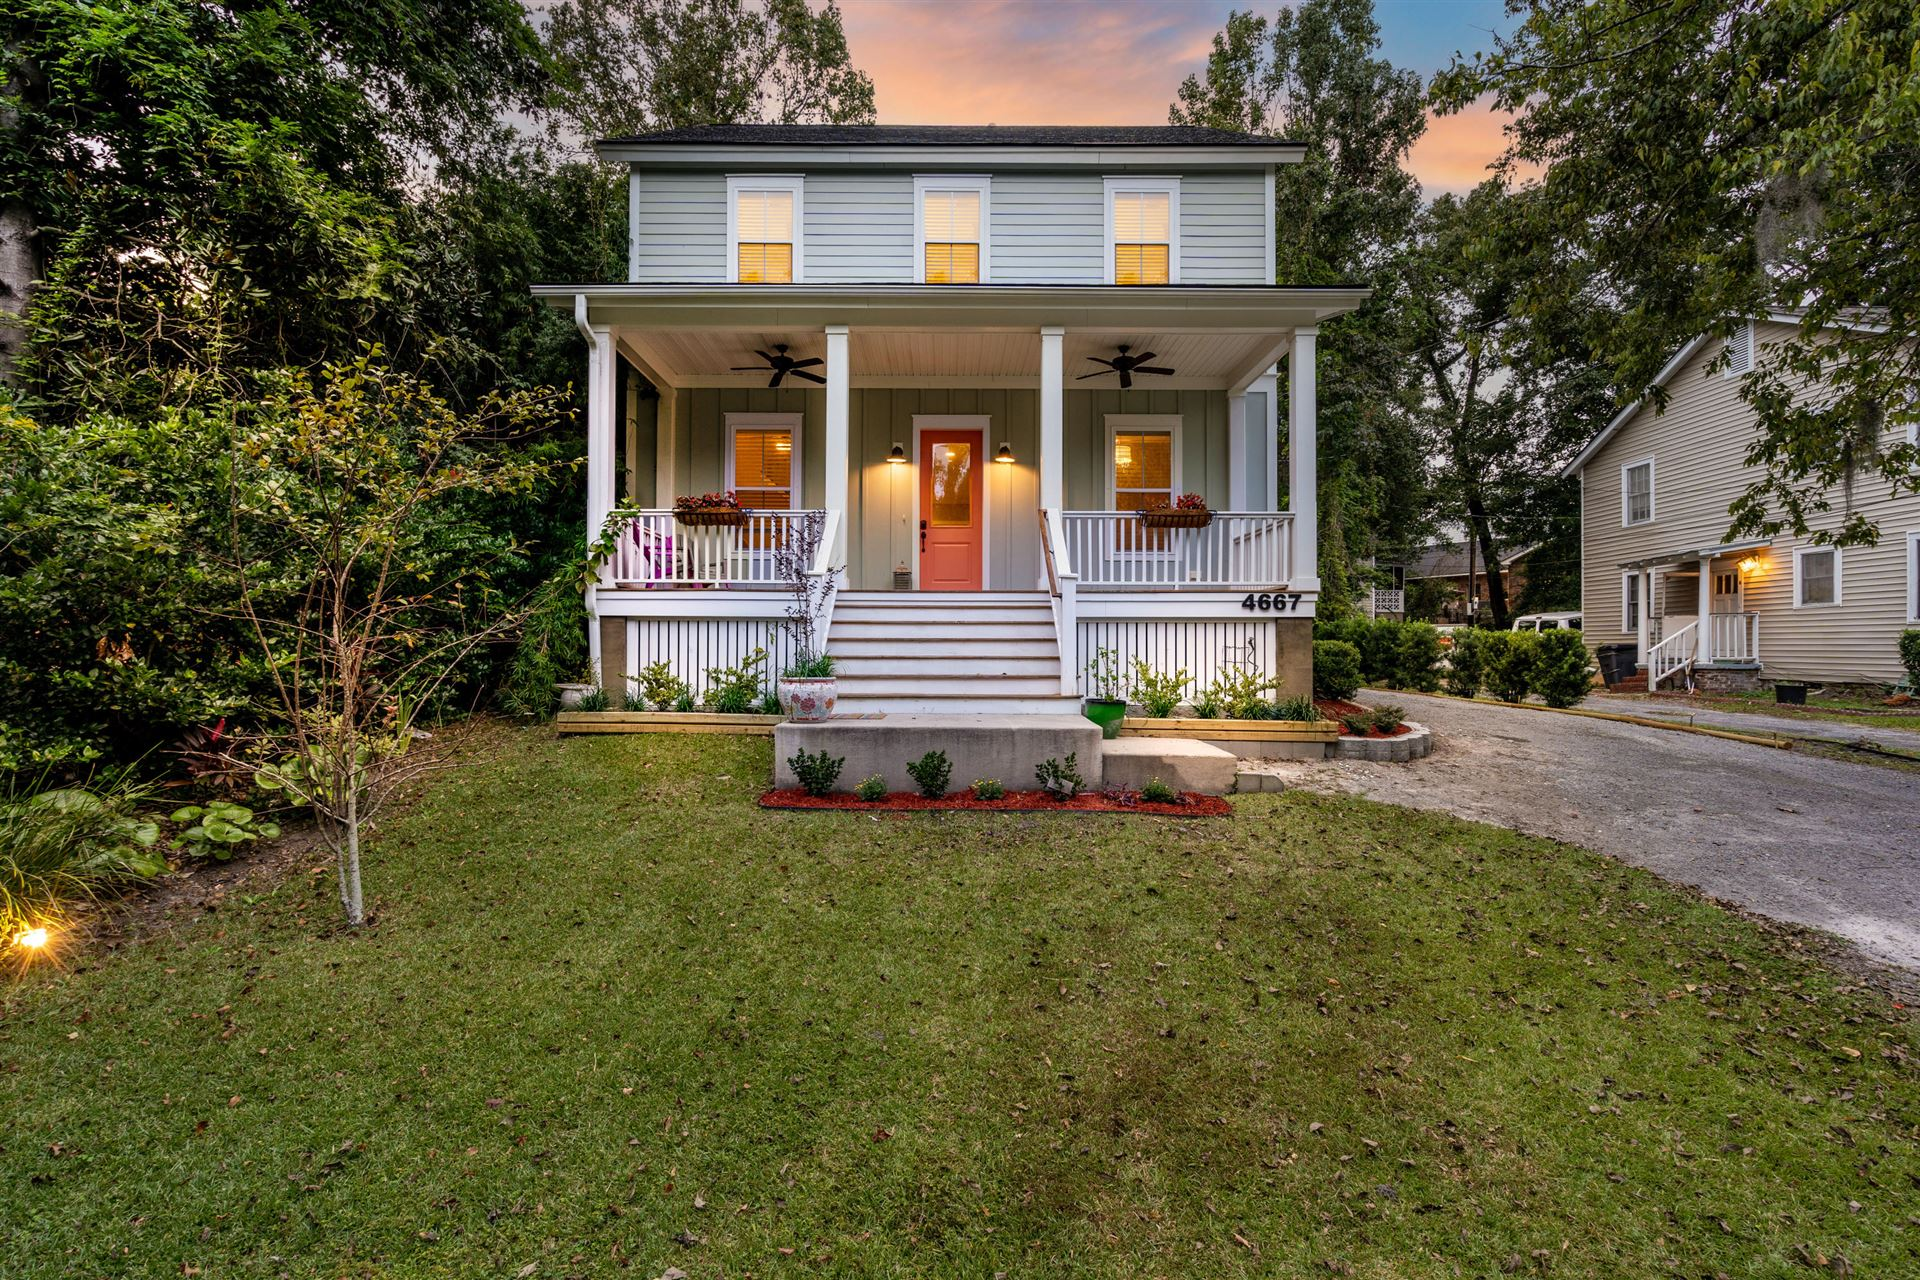 Photo of 4667 Oakwood Avenue, North Charleston, SC 29405 (MLS # 20029316)